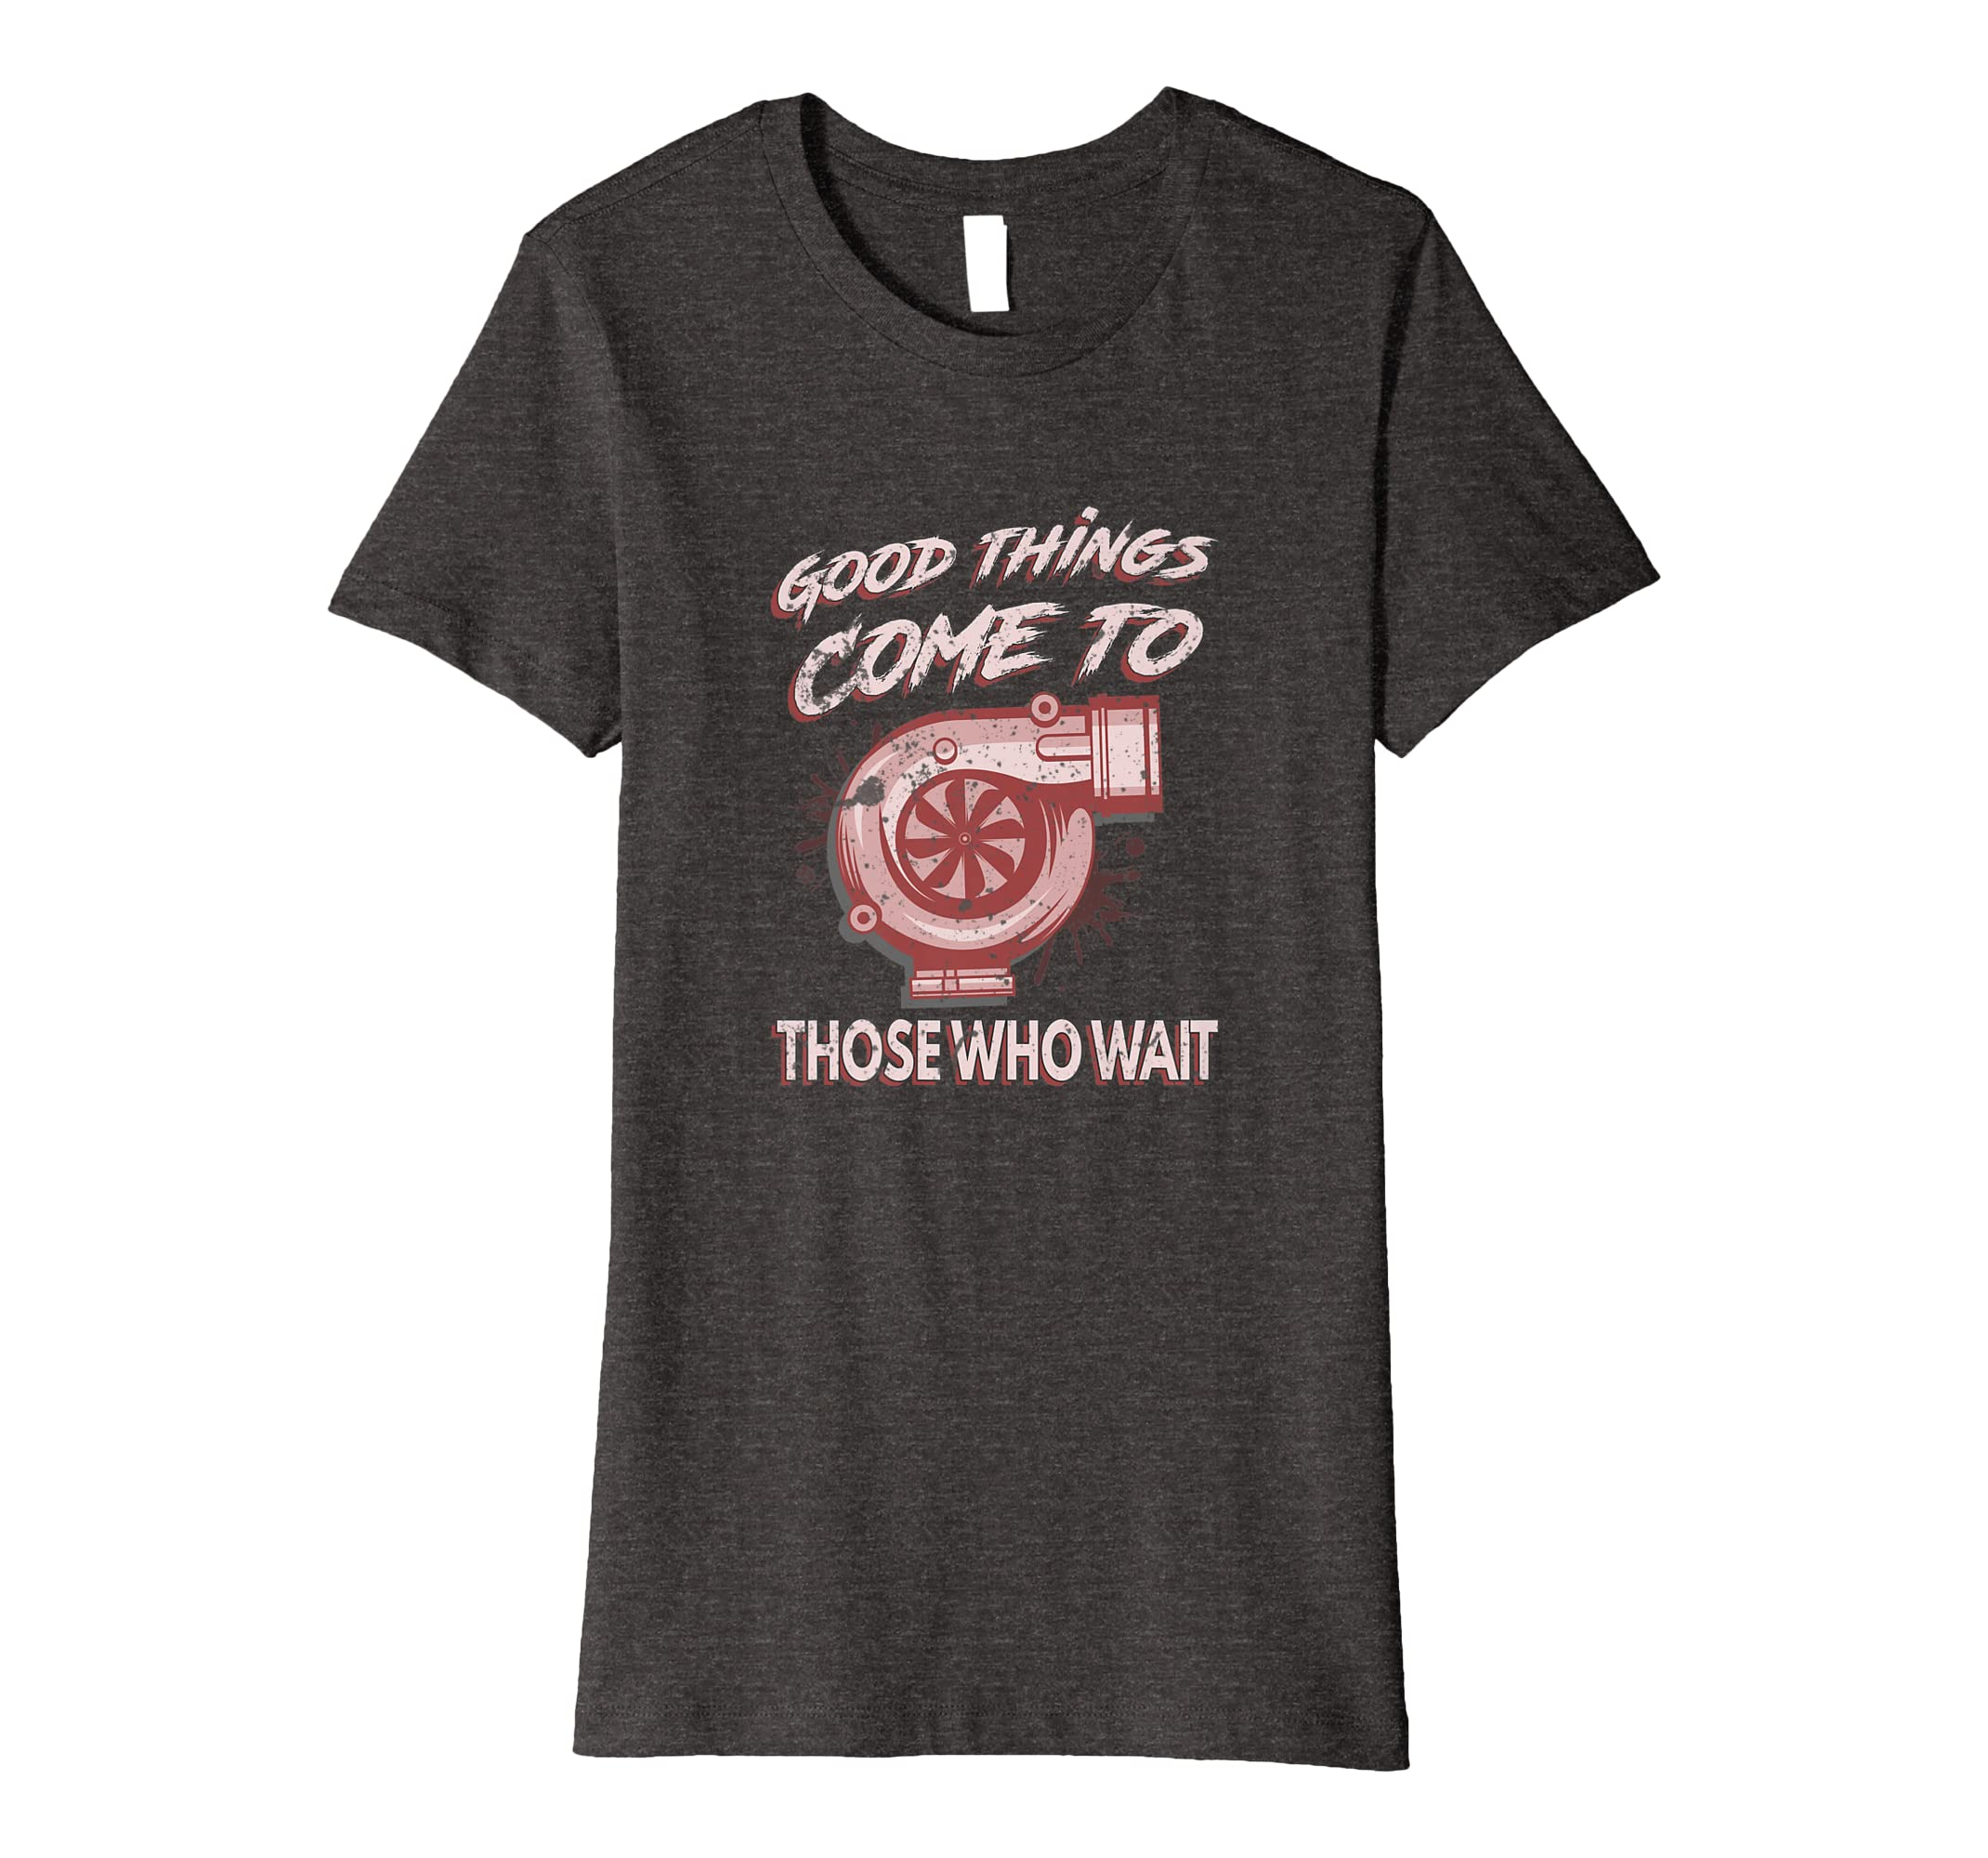 Amazon.com: Good Things Come Those Who Wait T-Shirt Truck 4X4 Turbo Tee: Clothing